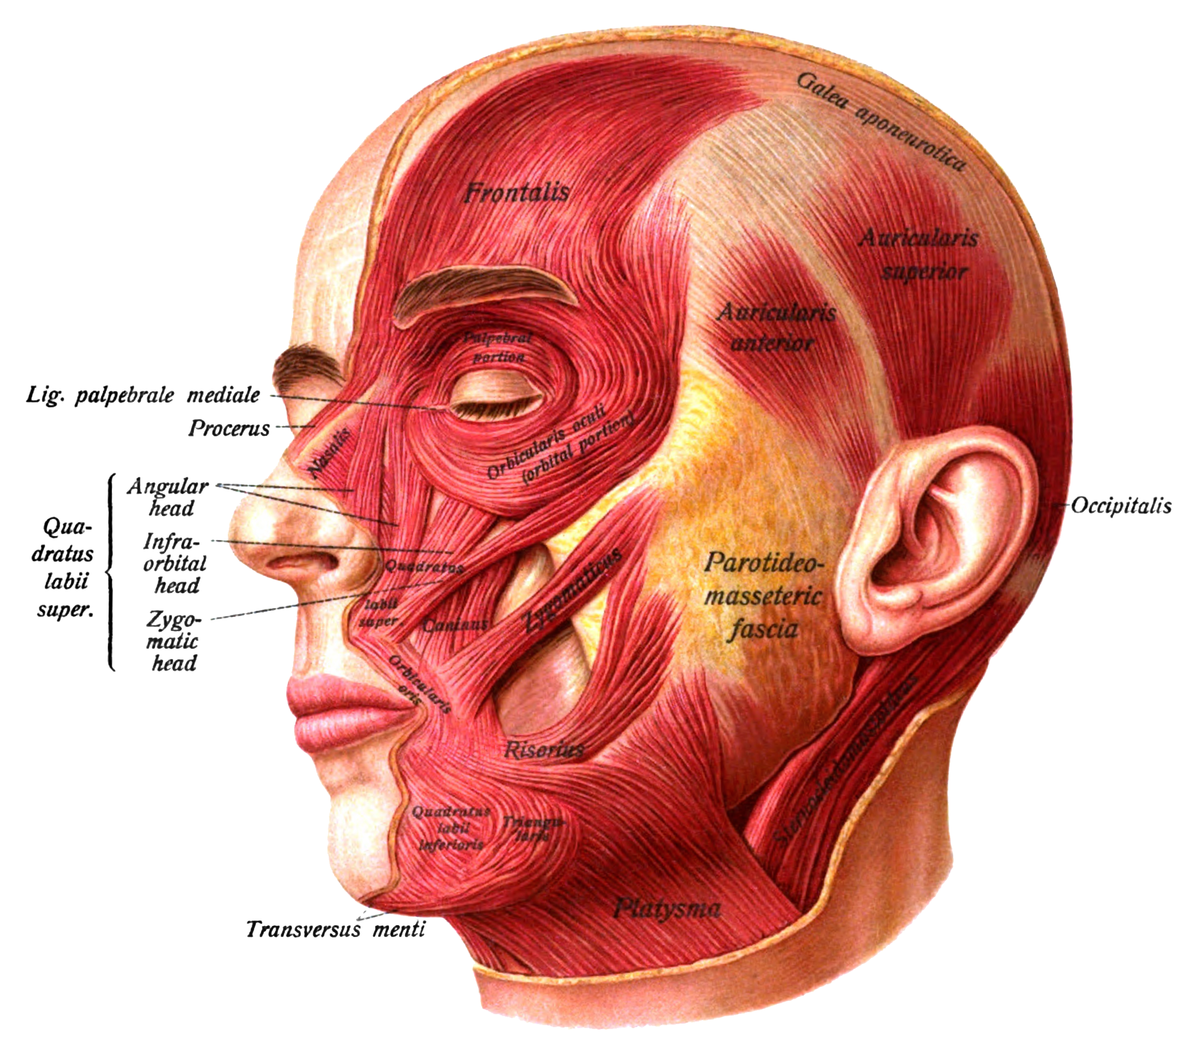 face anatomy - Vatoz.atozdevelopment.co